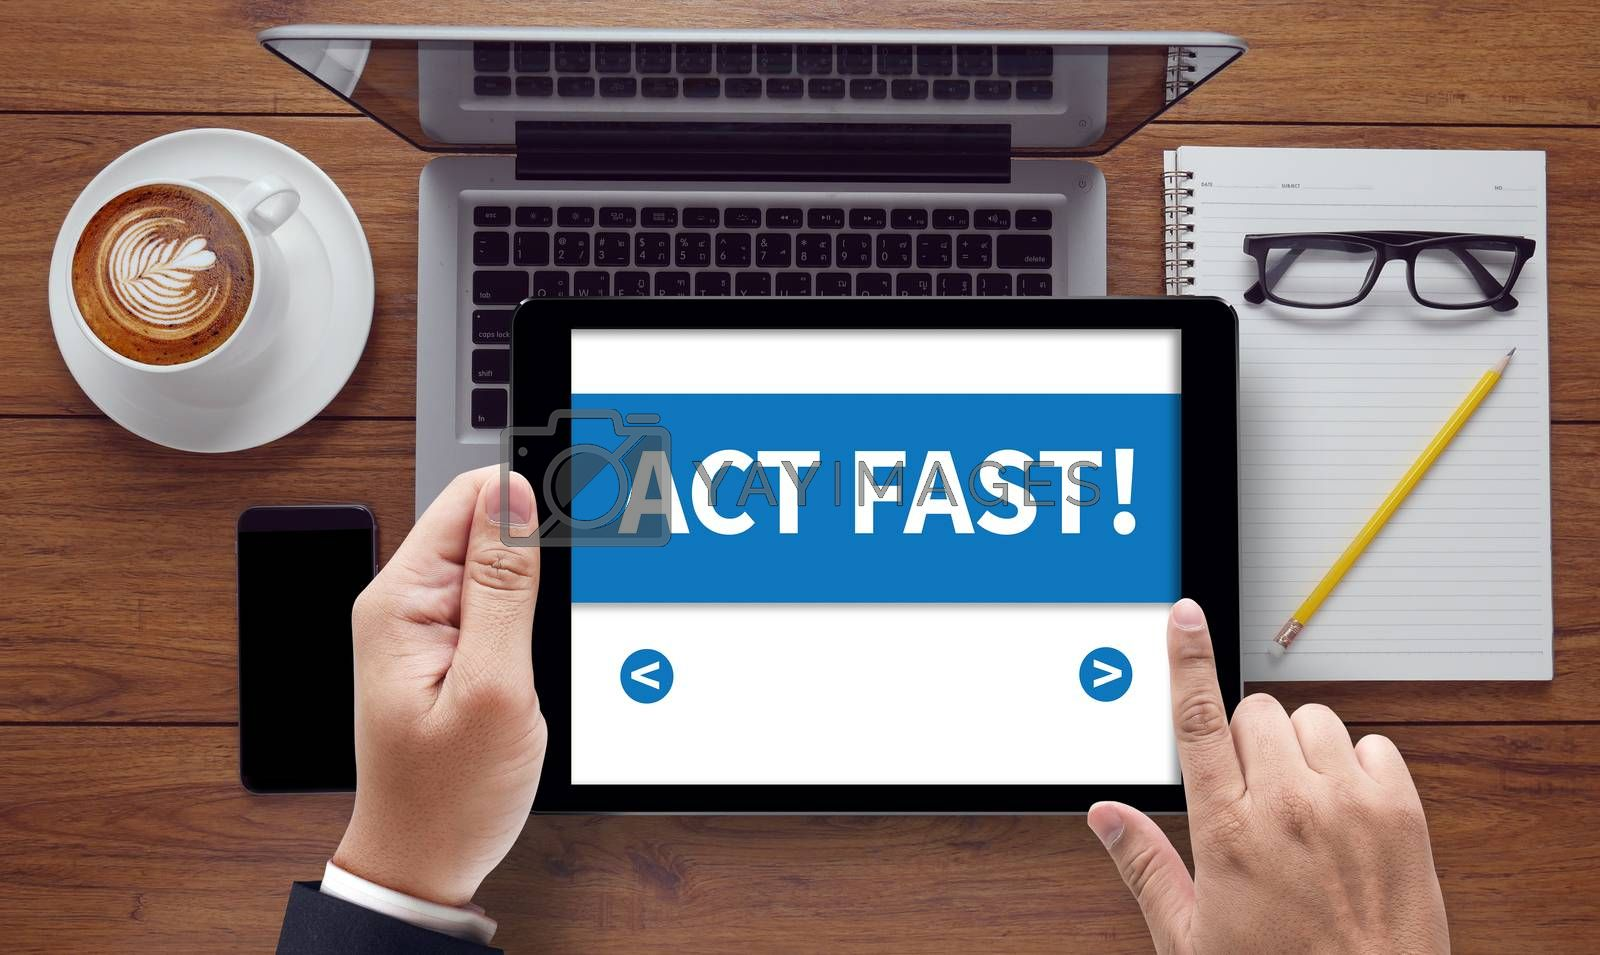 ACT FAST!, on the tablet pc screen held by businessman hands - online, top view